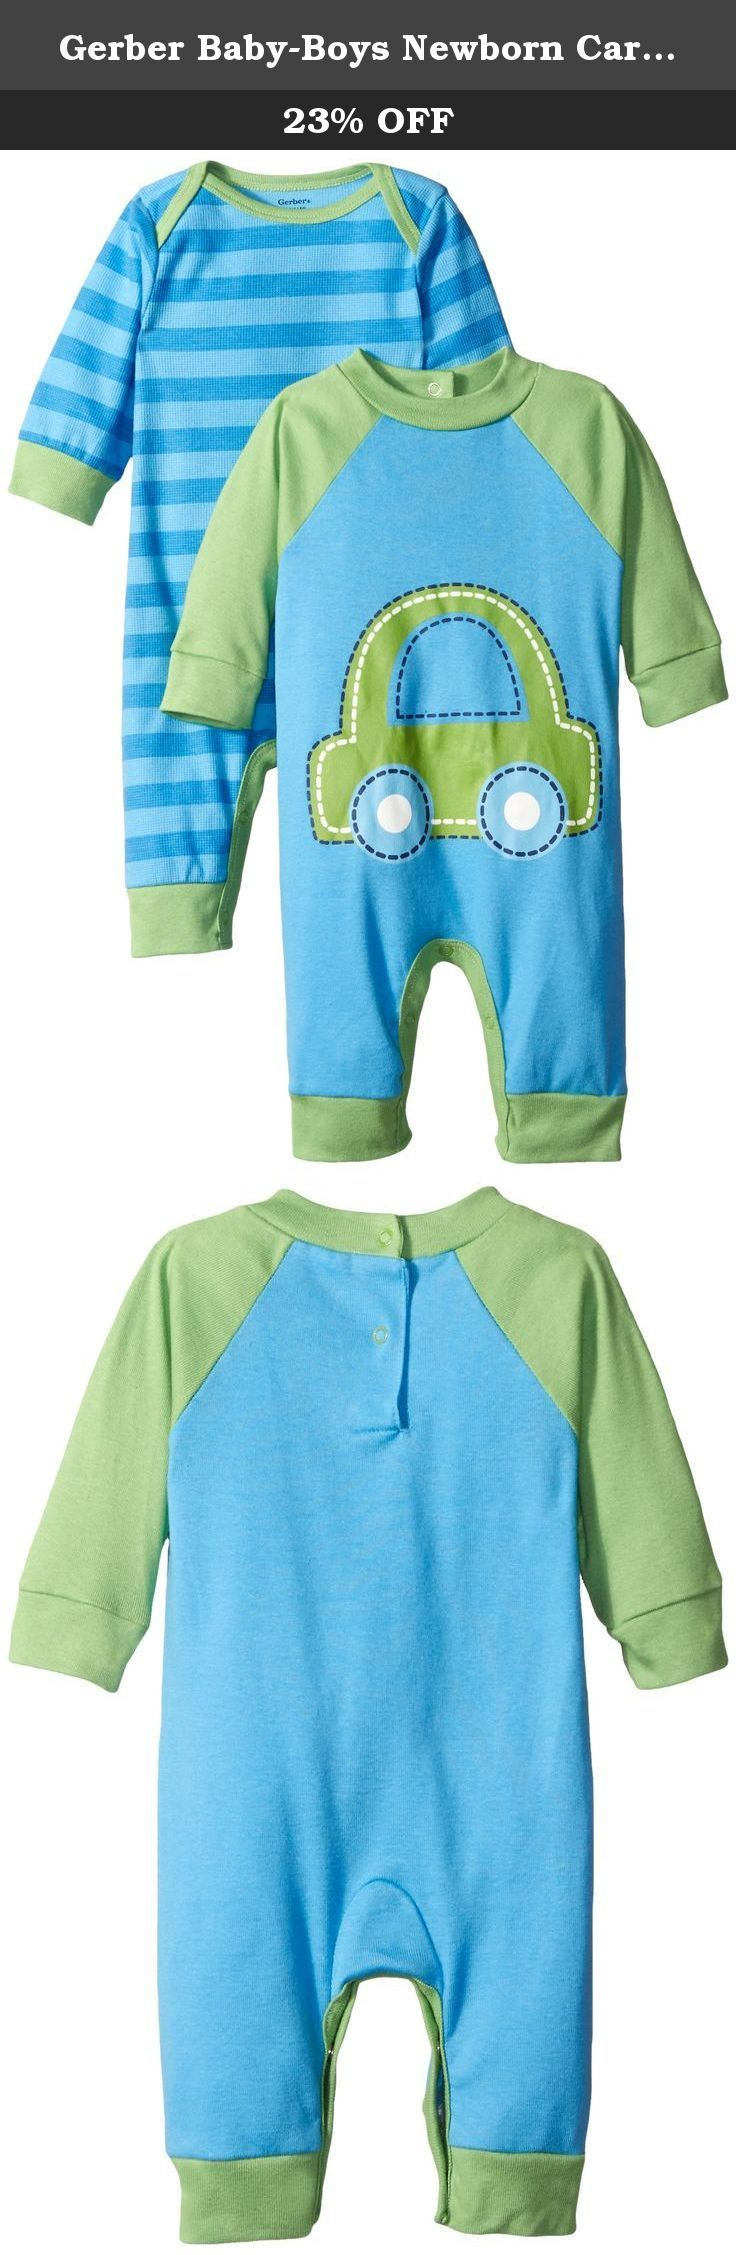 Gerber Baby-Boys Newborn Car 2 Pack Coverall, Car Blue, 18 Months. Gerber coveralls are cozy soft and comfortable for any indoor or outside activity, any time of day.